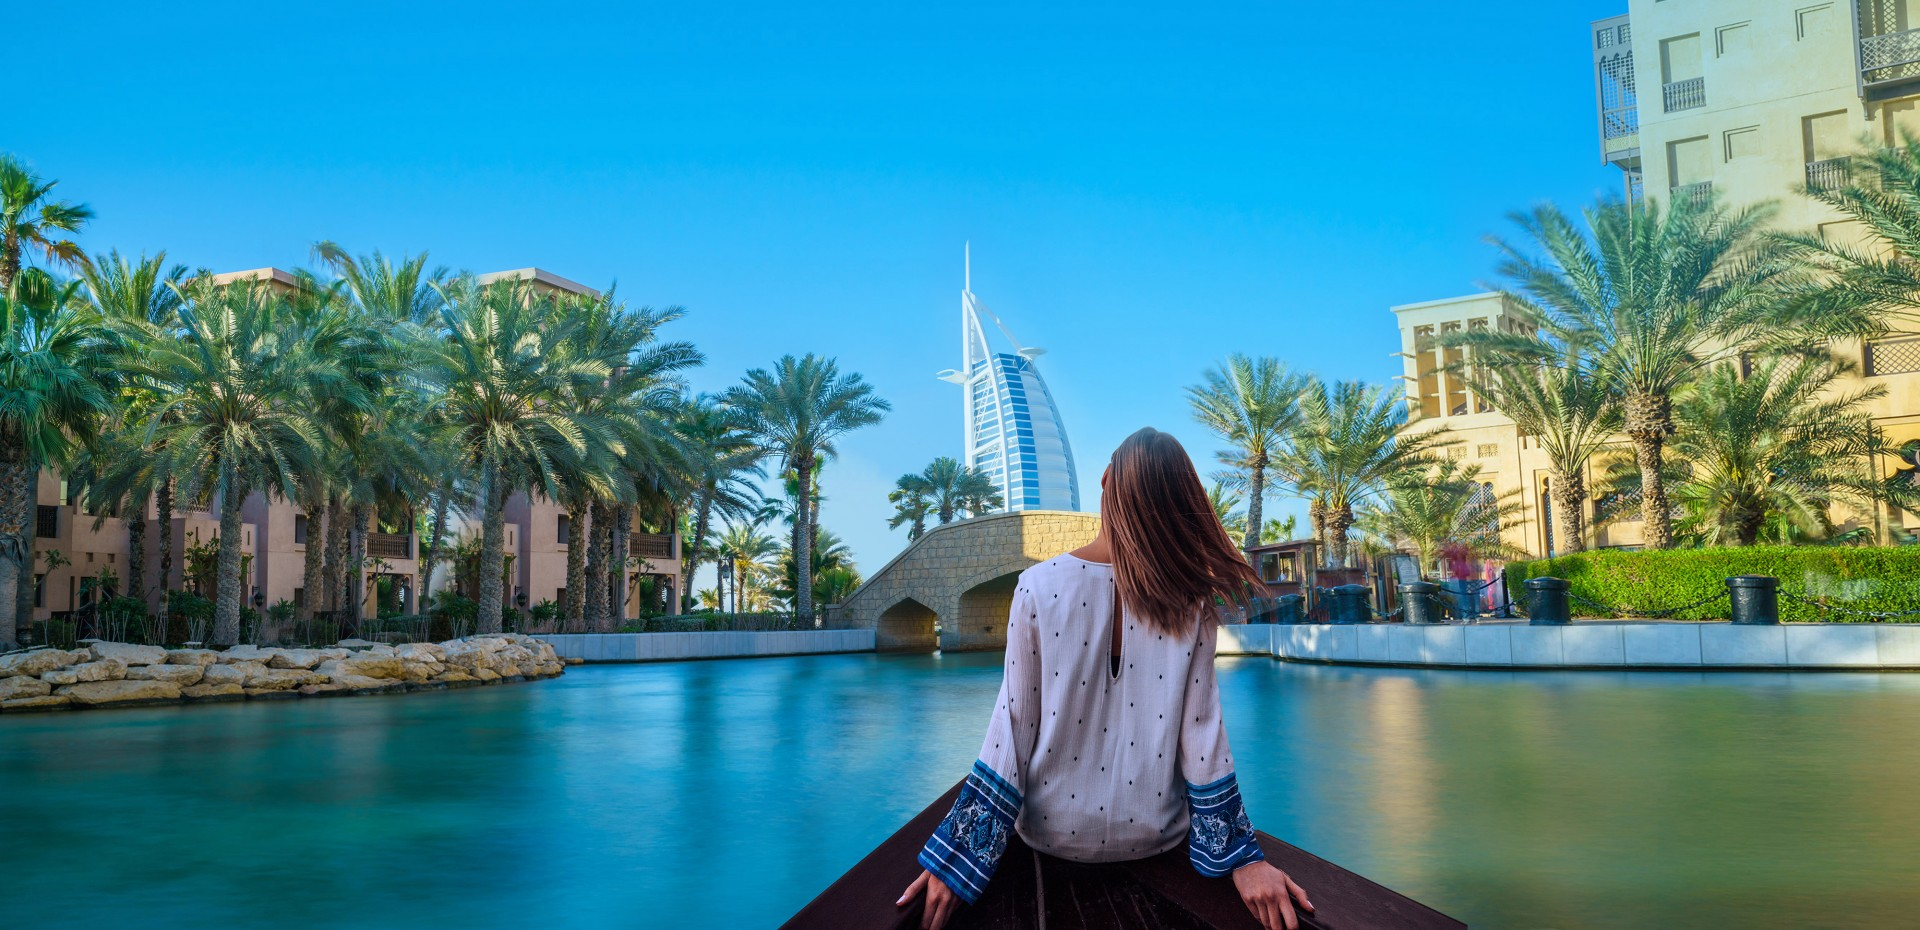 Emirates' hub Dubai is open for business, fun and tourism and visitors will be spoilt for choice in the family-friendly city with its year-round sunshine, iconic landmarks, and a culinary scene to suit every taste.